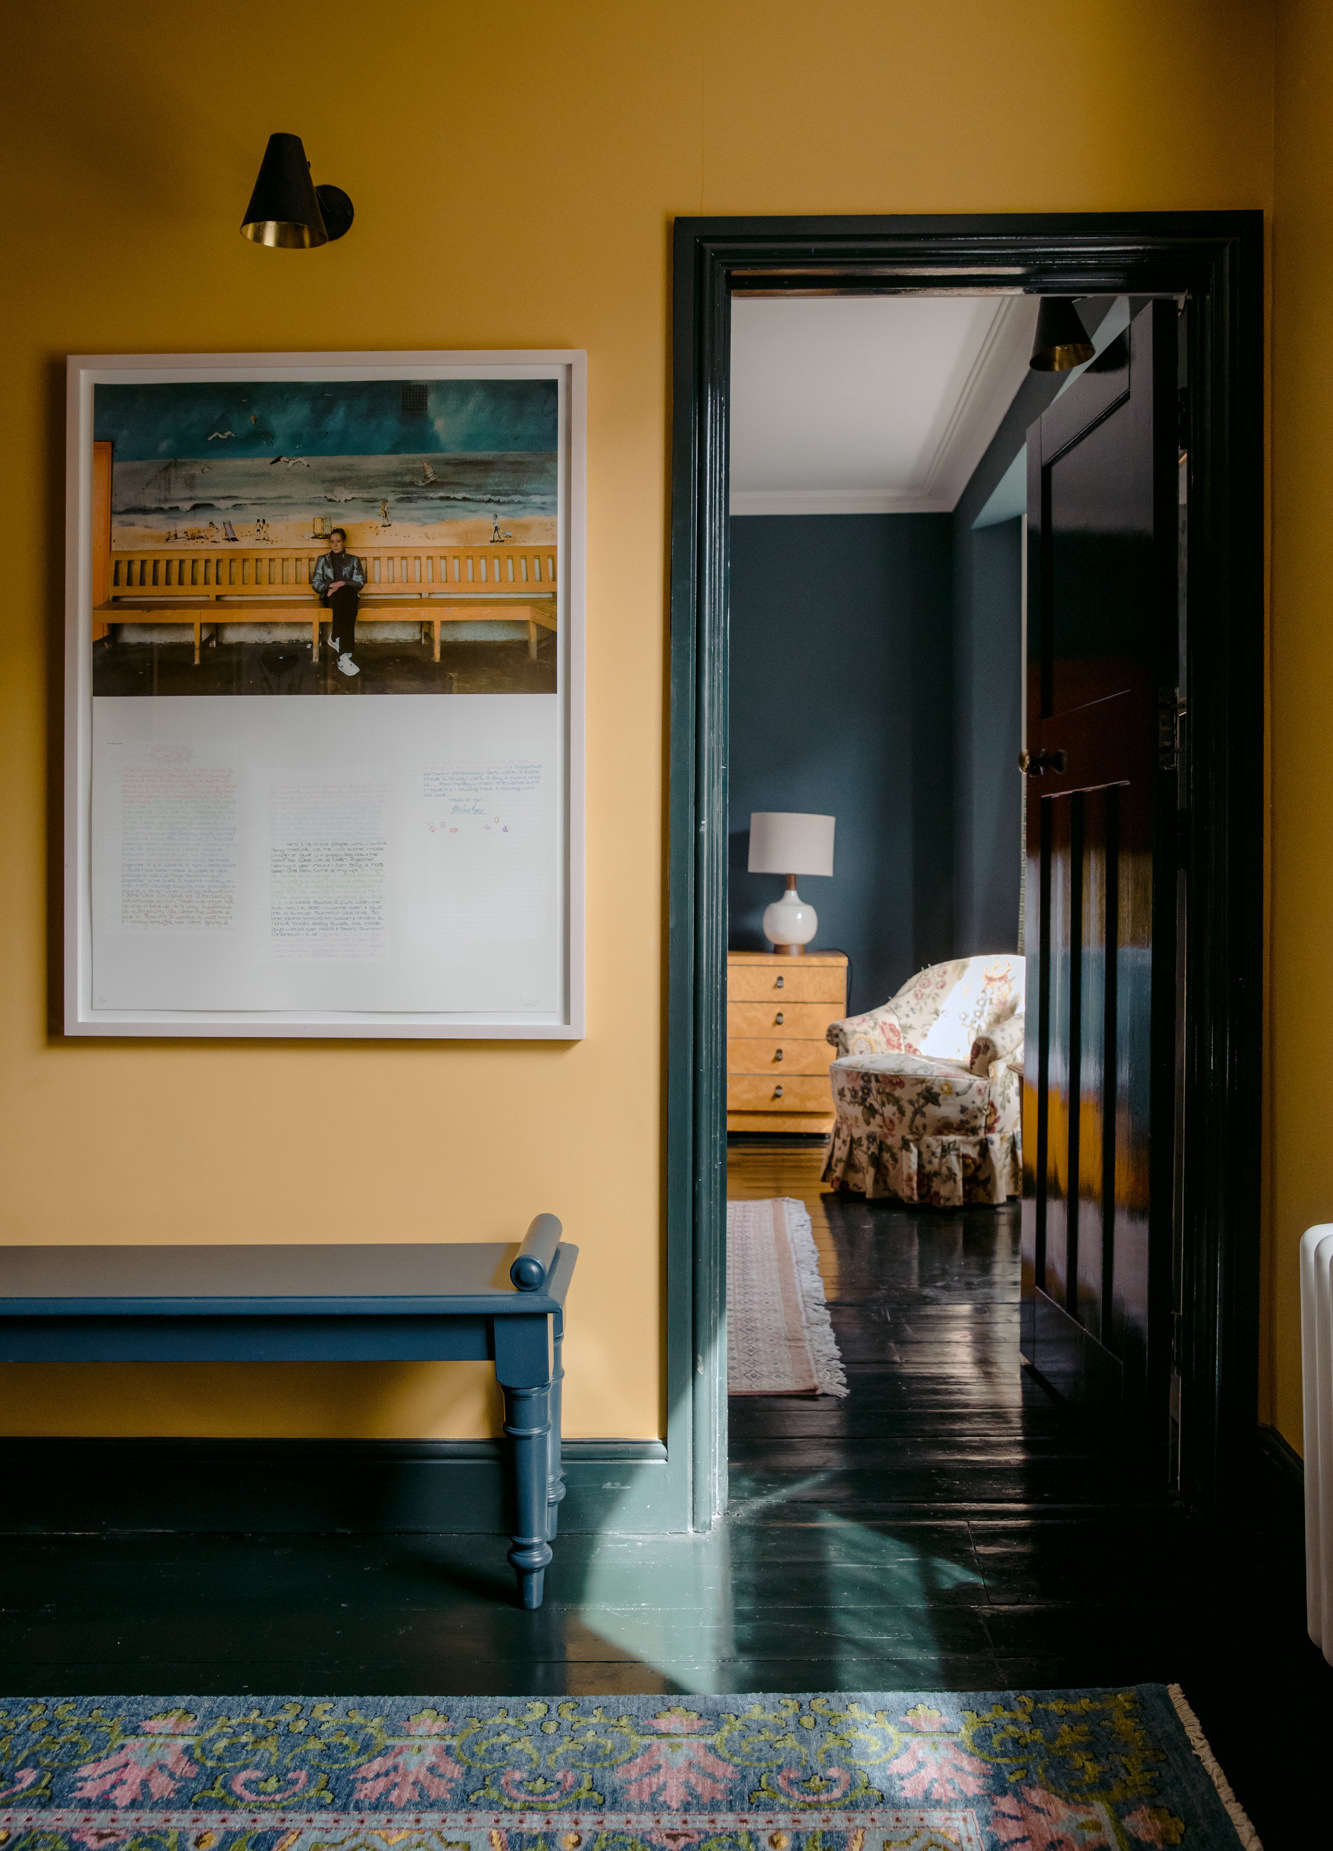 Black-painted wood floors in an English hotel; see more in The Rose: A Singular Seaside Inn on the English Coast, Color Edition.